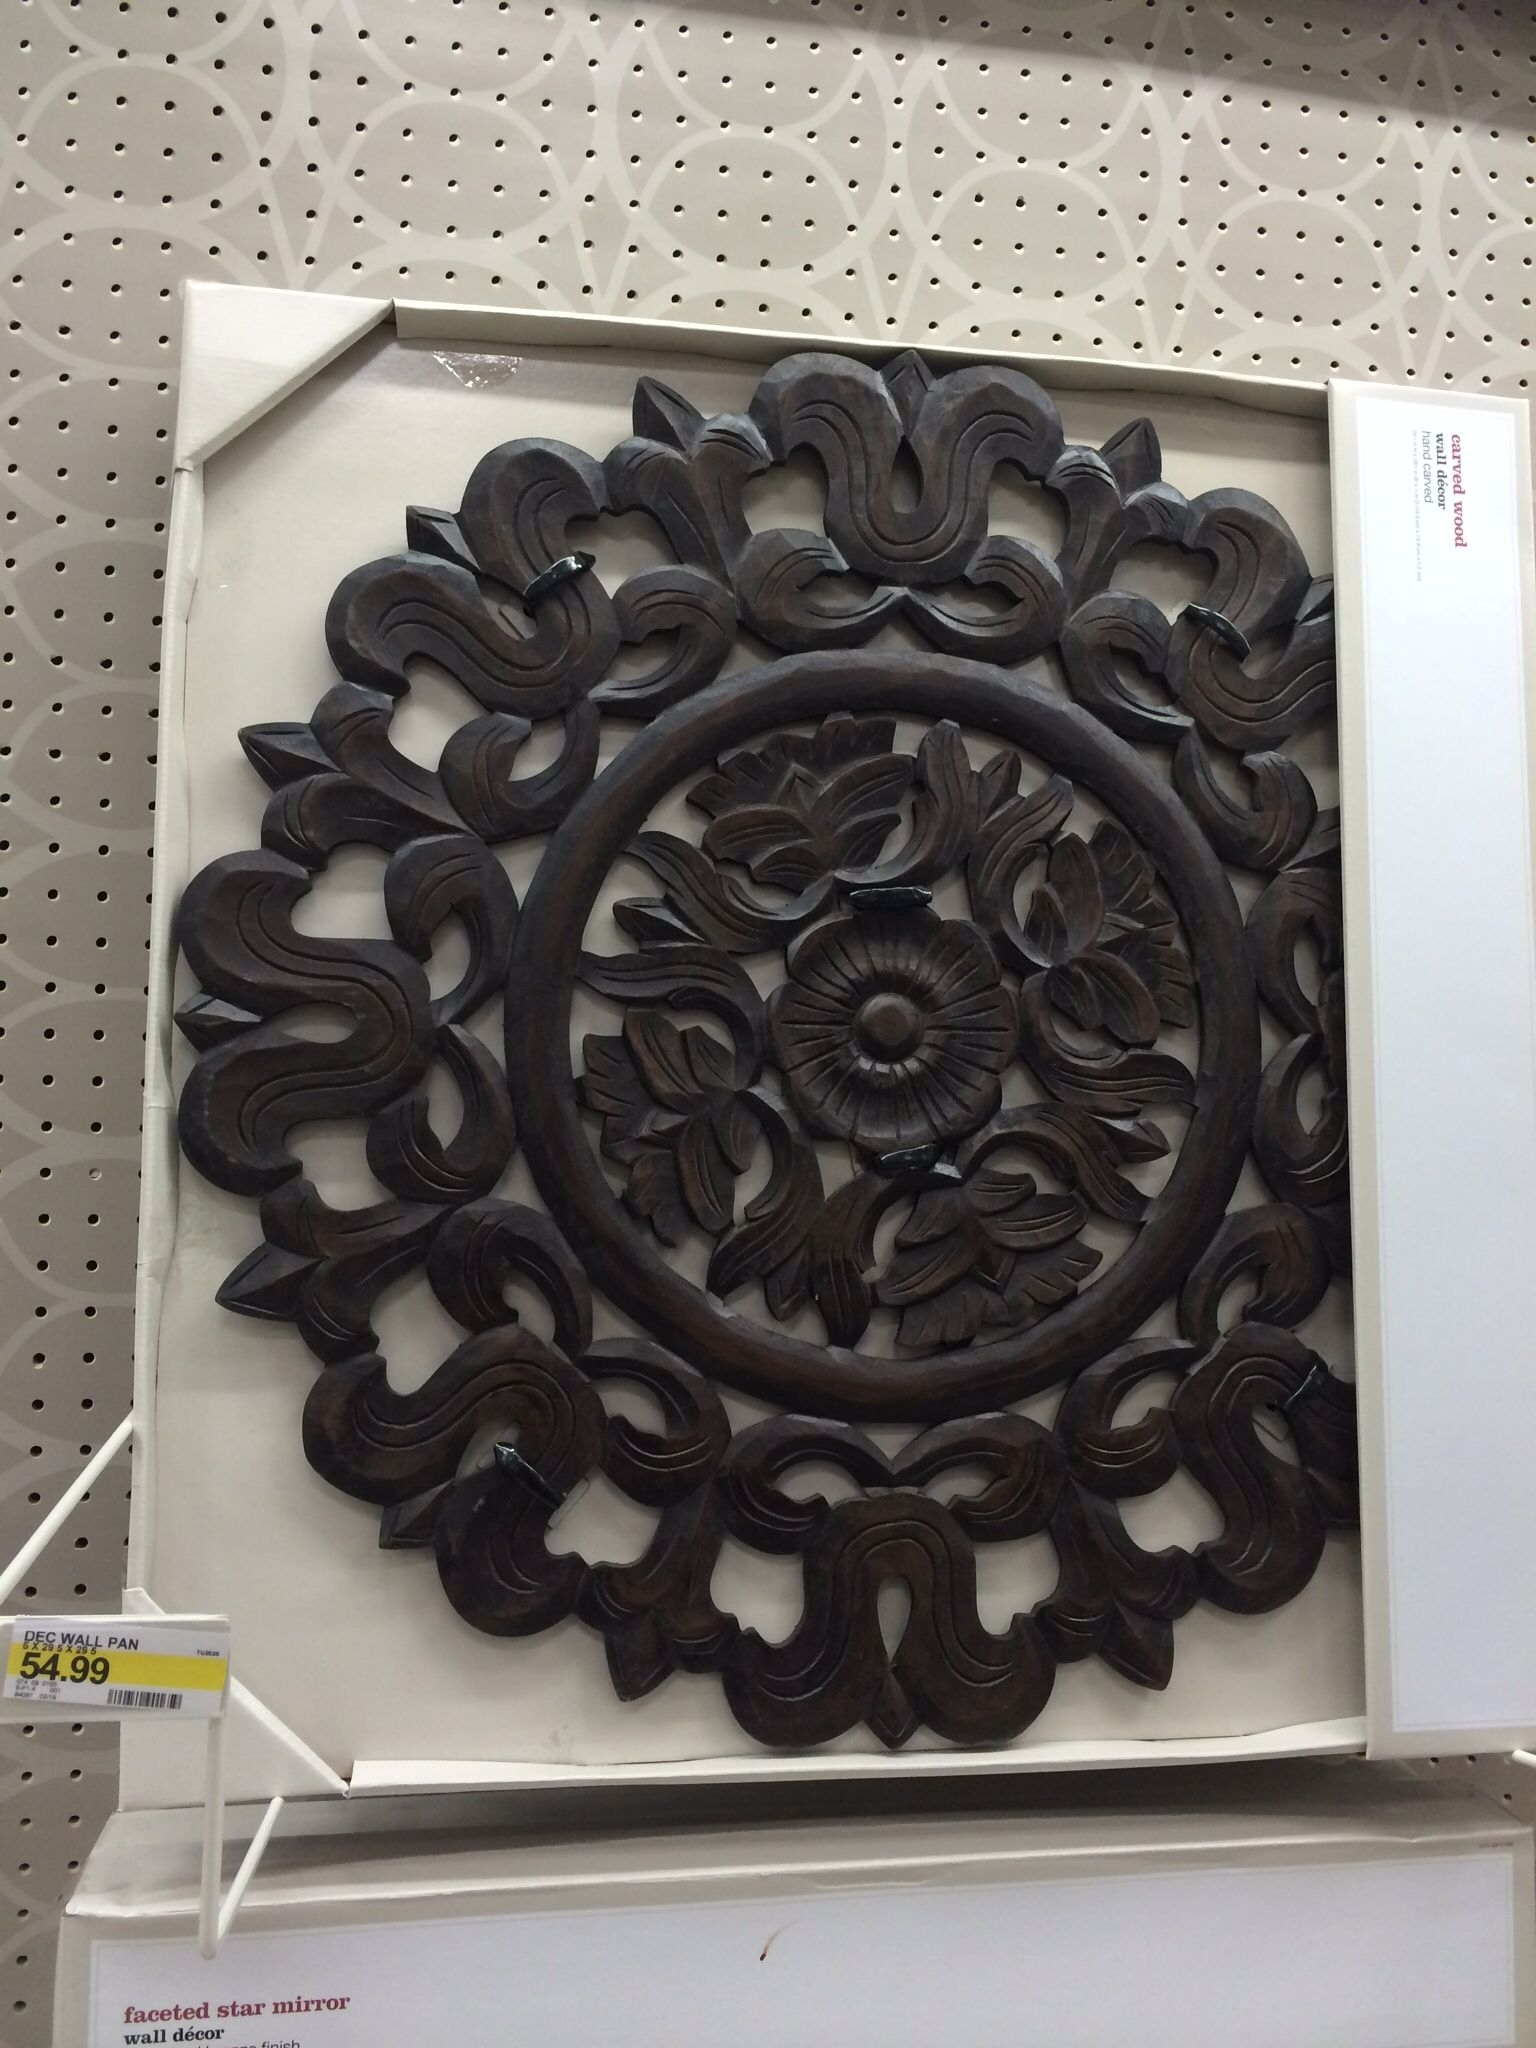 Carved Wood Wall Art From Target. | Apartment. | Pinterest | Cheap Inside Latest Target Wall Art (Gallery 1 of 15)